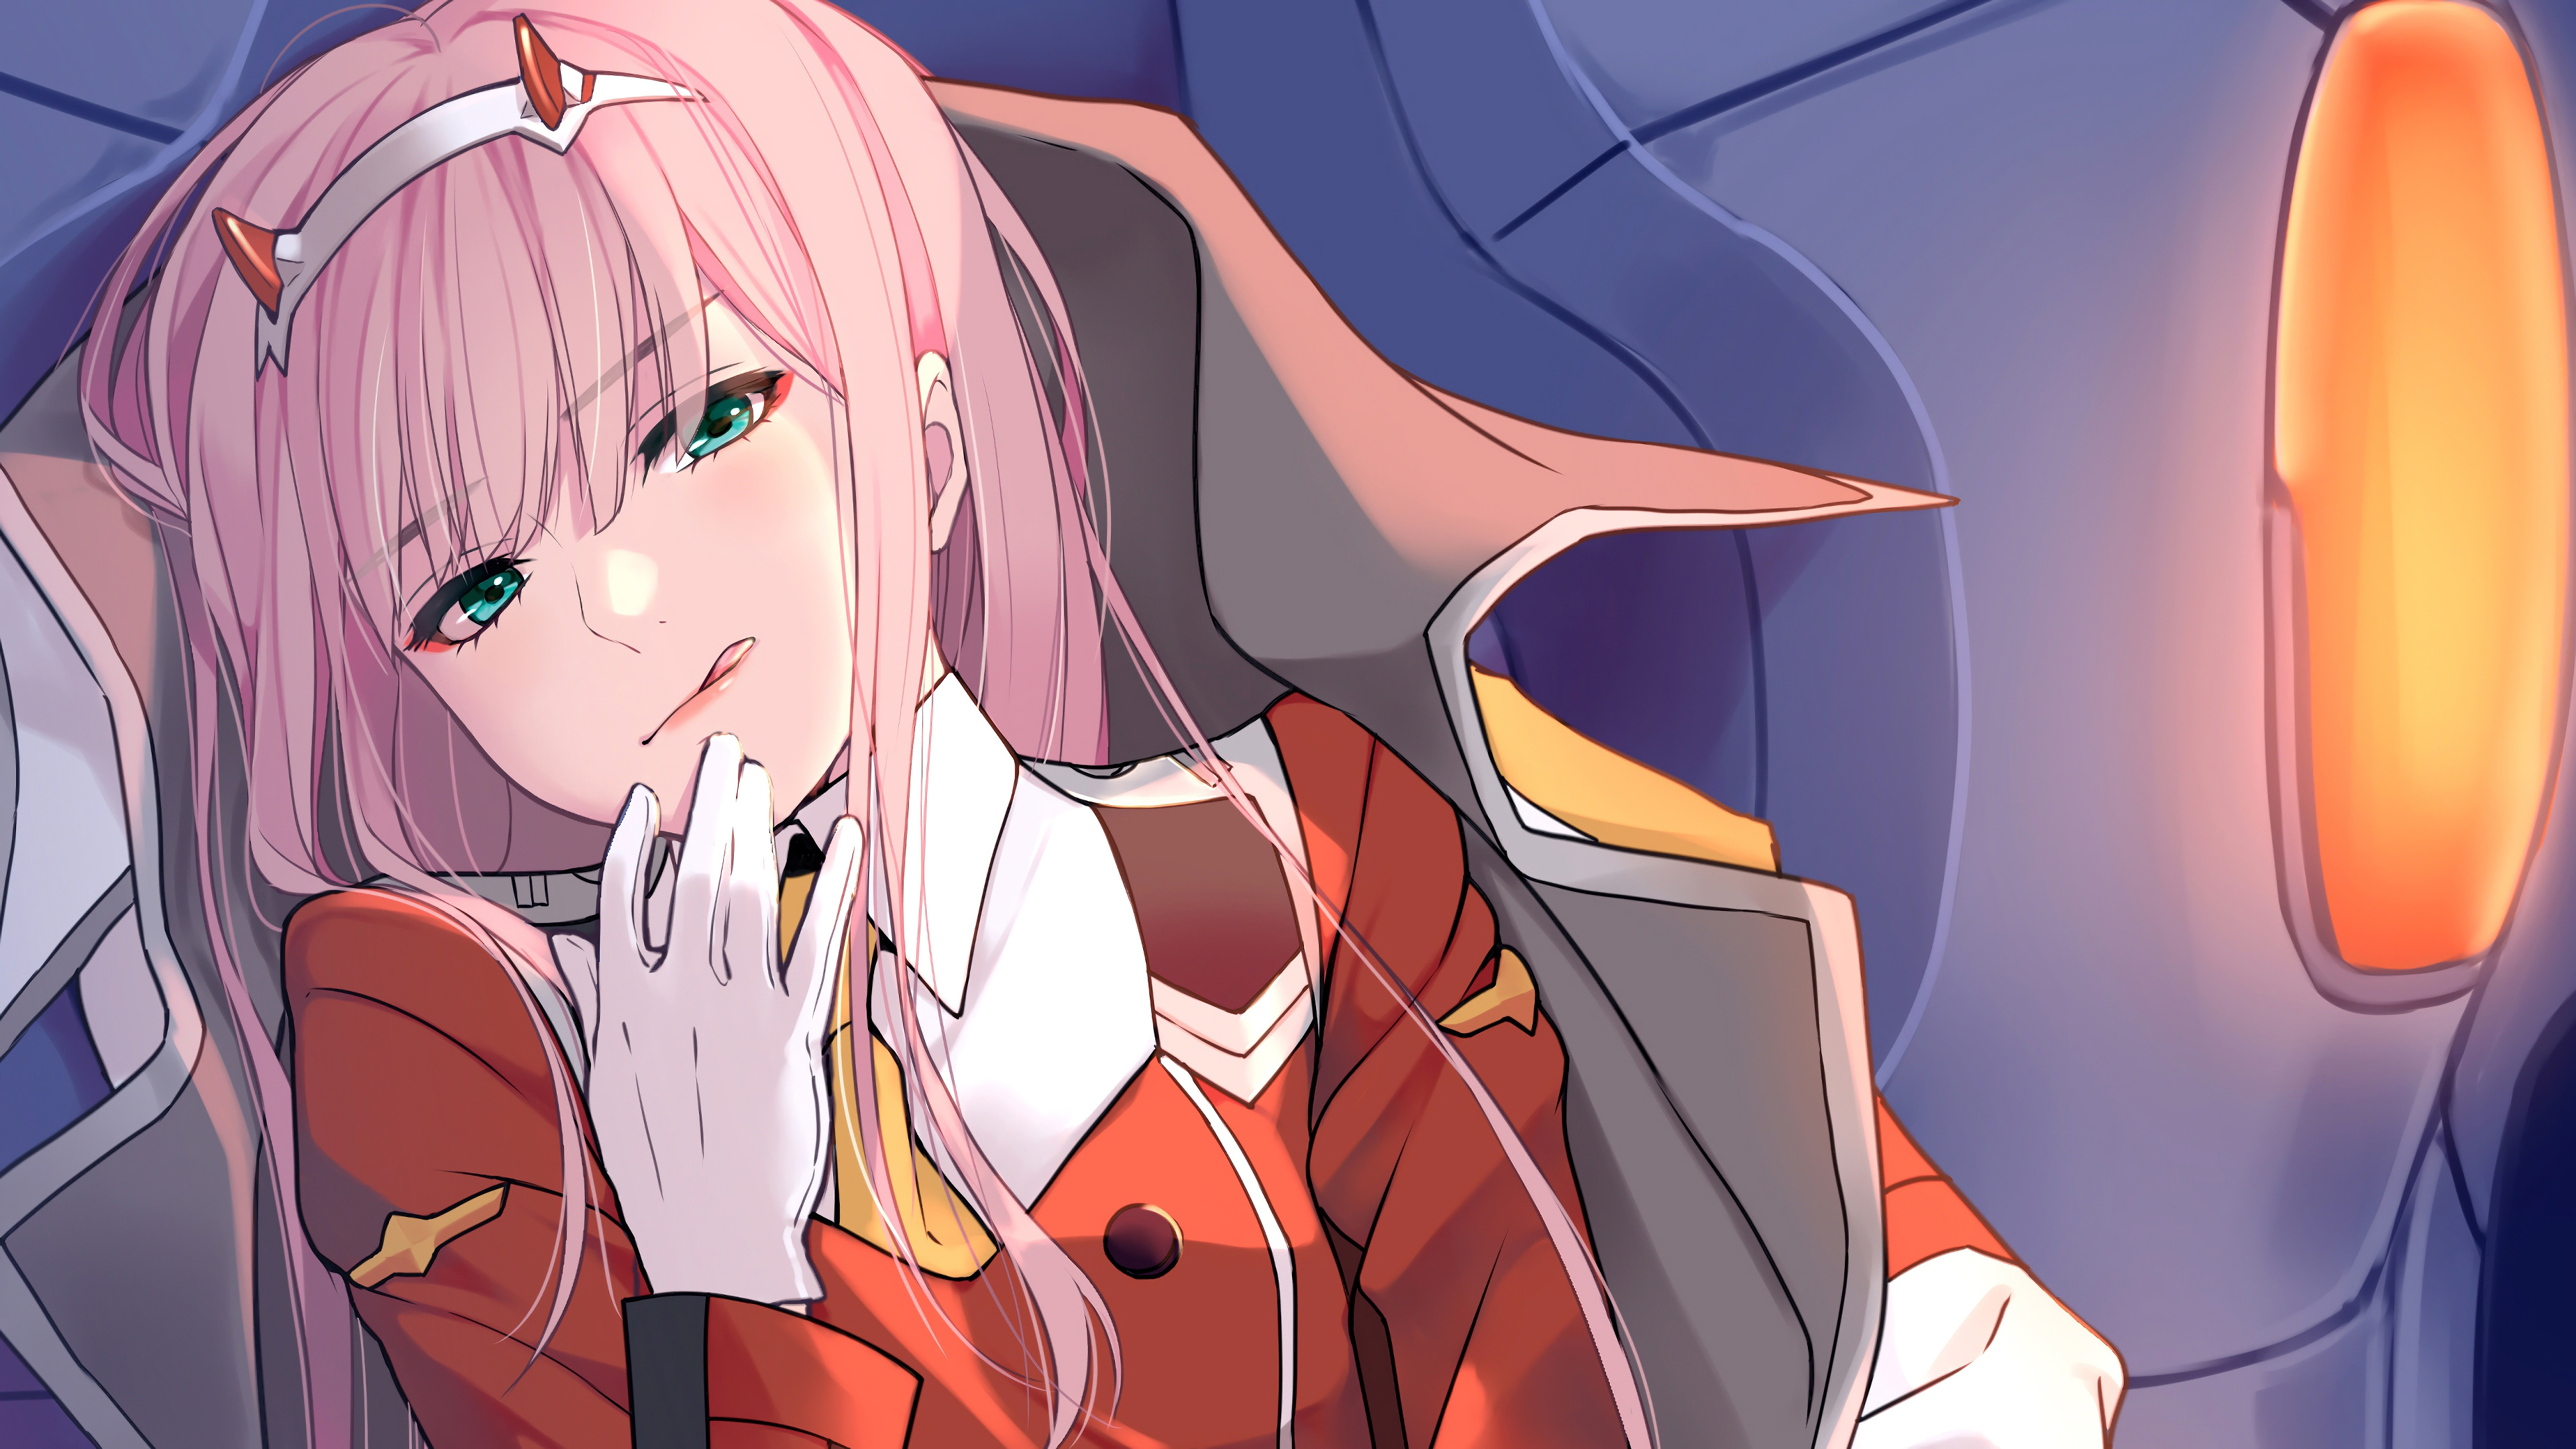 571 zero two darling in the franxx hd wallpapers background. darling in the franxx zero two with red dress and coat 4k ...